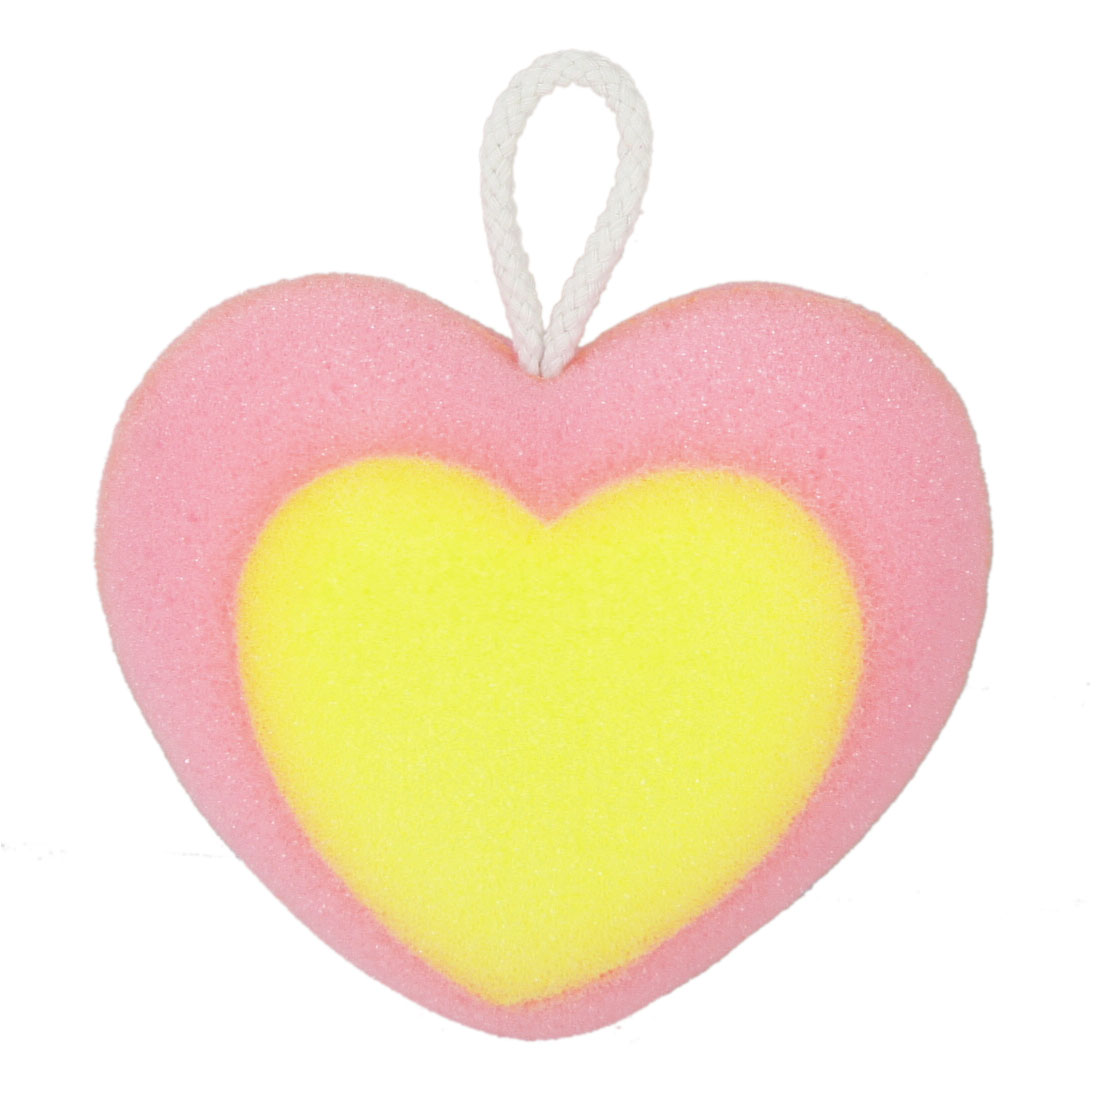 Yellow Heart Decor Pink Heart Shape Body Massage Cleaner Shower Sponge